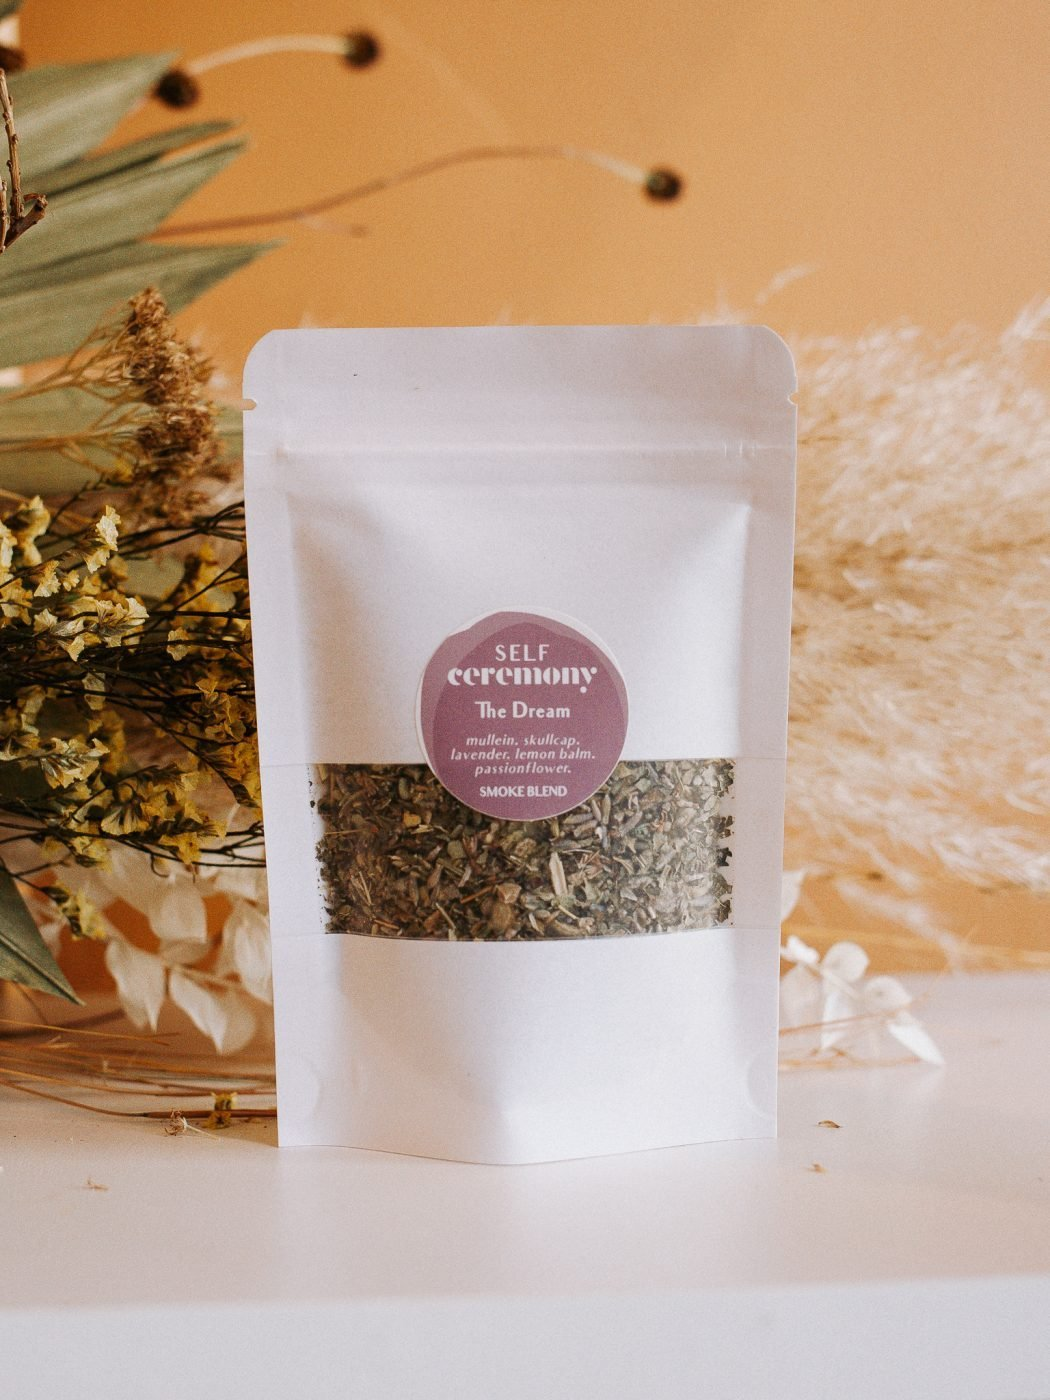 the dream herbal smoking blend by self ceremony